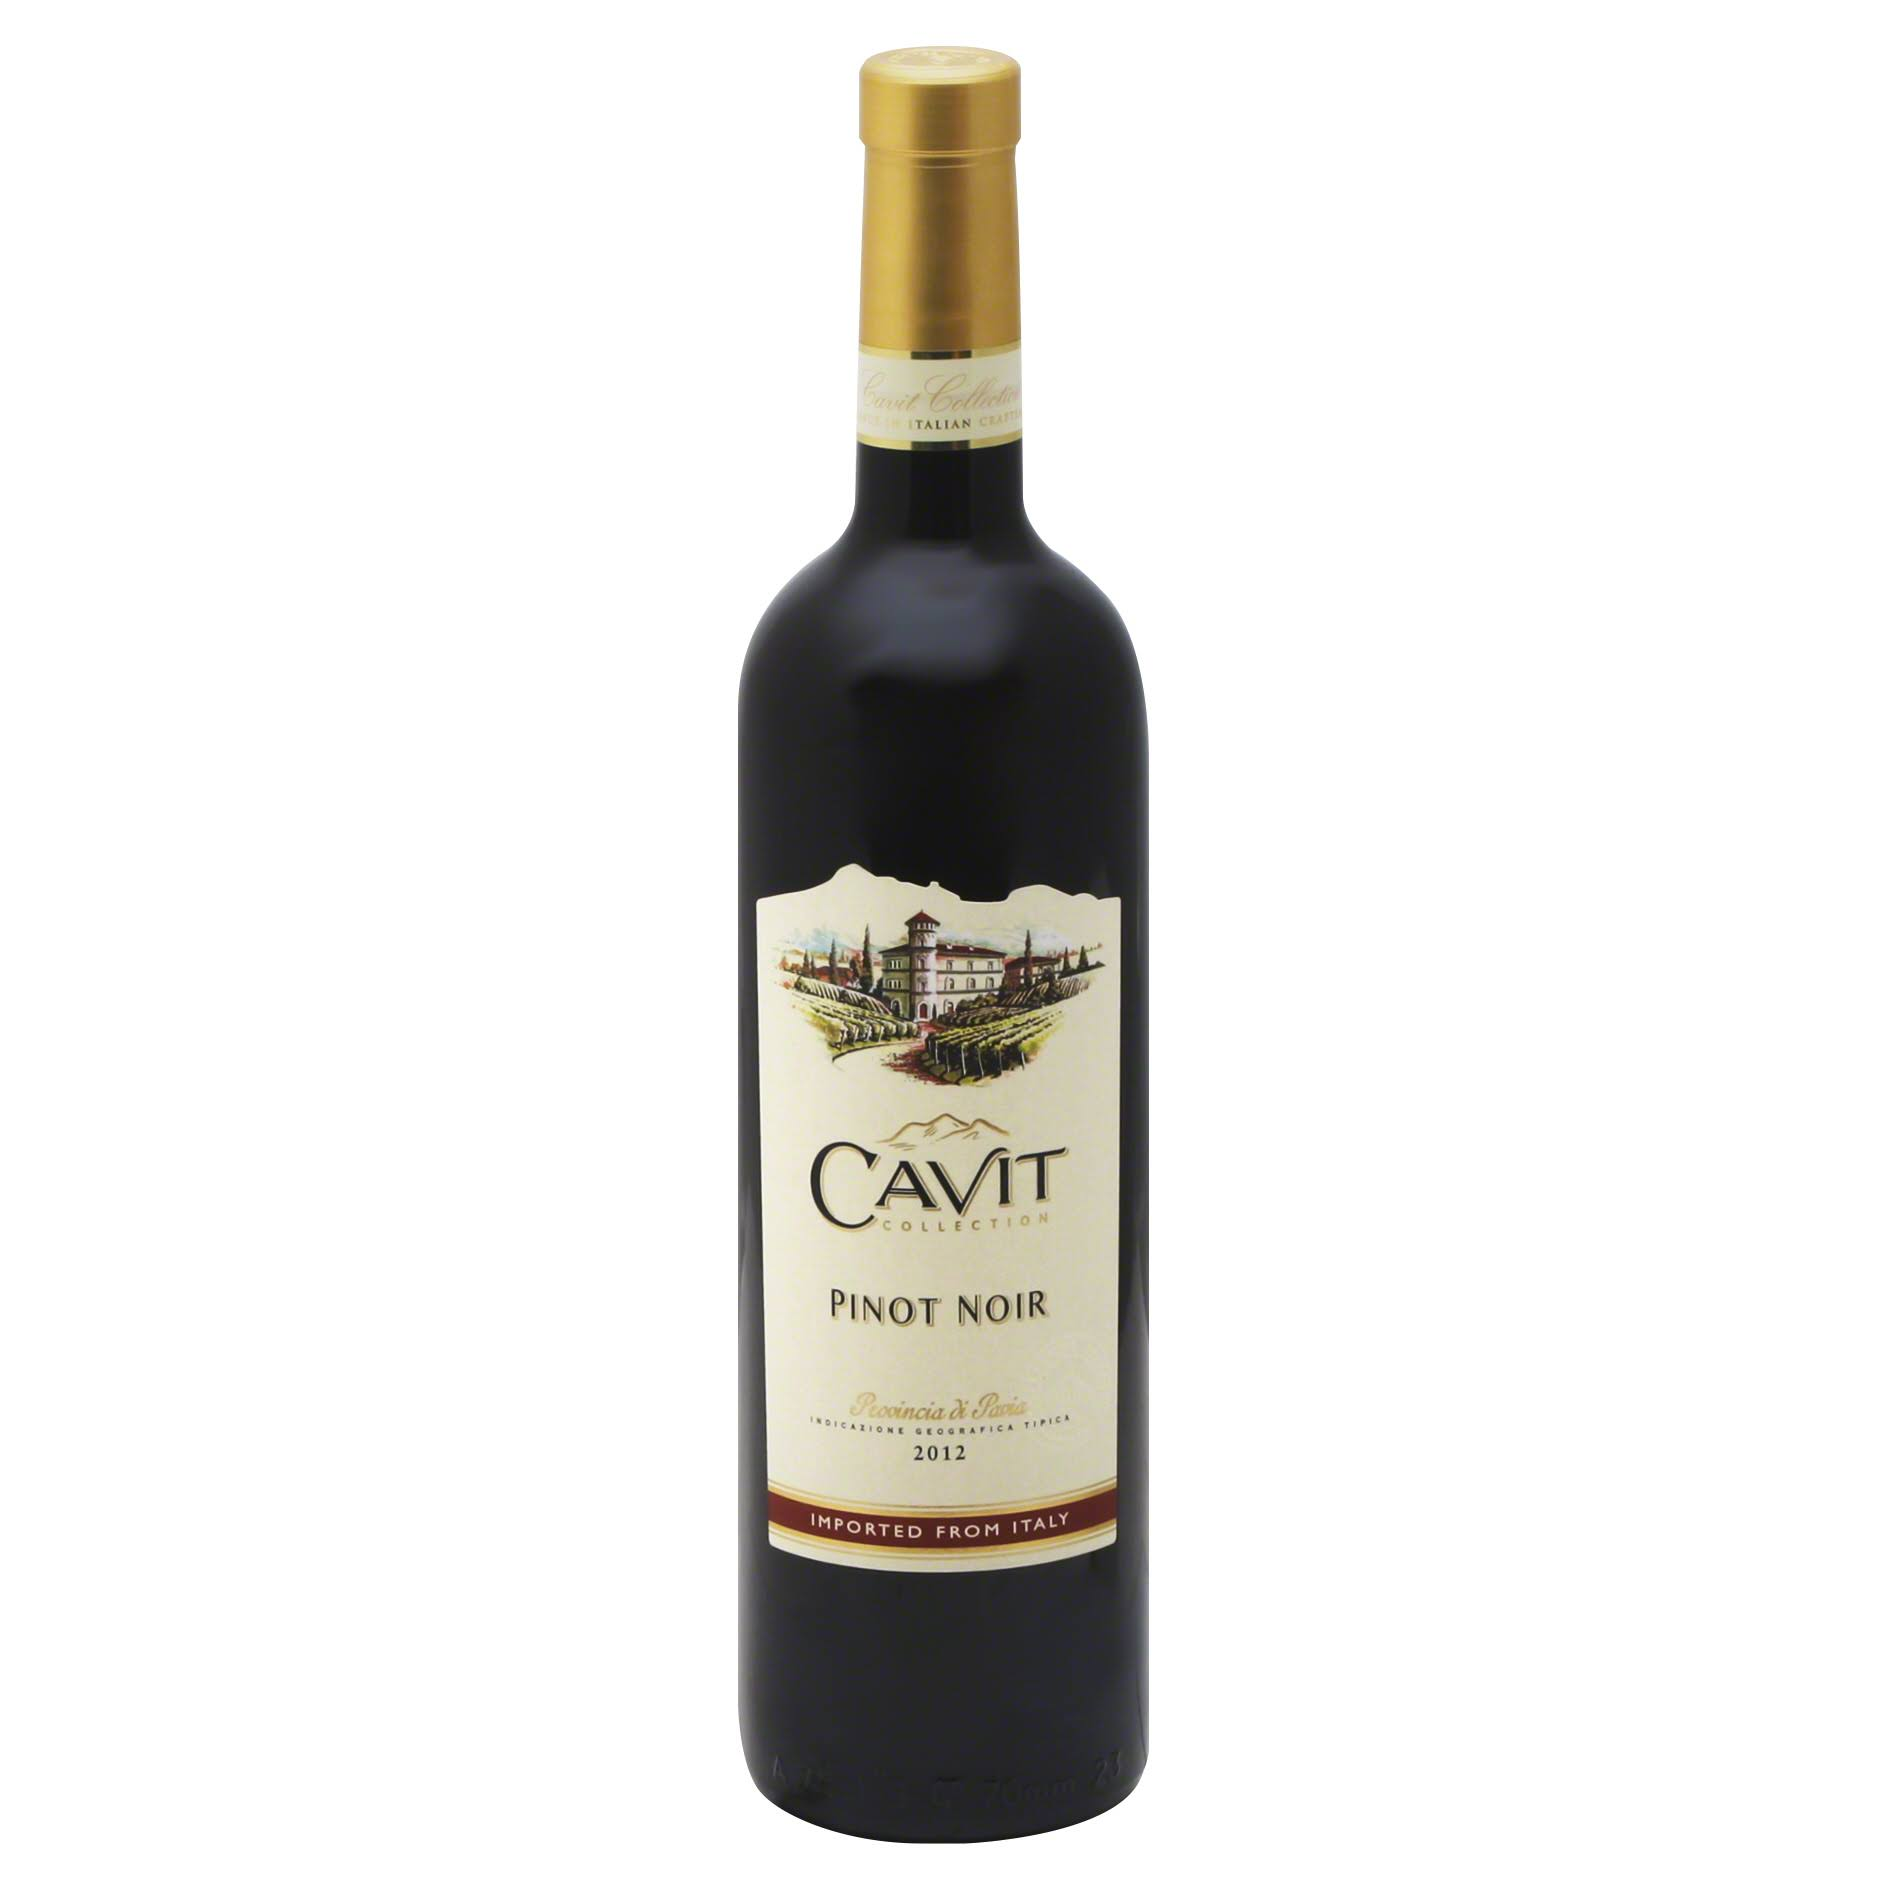 Cavit Collection Pinot Noir, Provincia di Pavia, 2012 - 750 ml